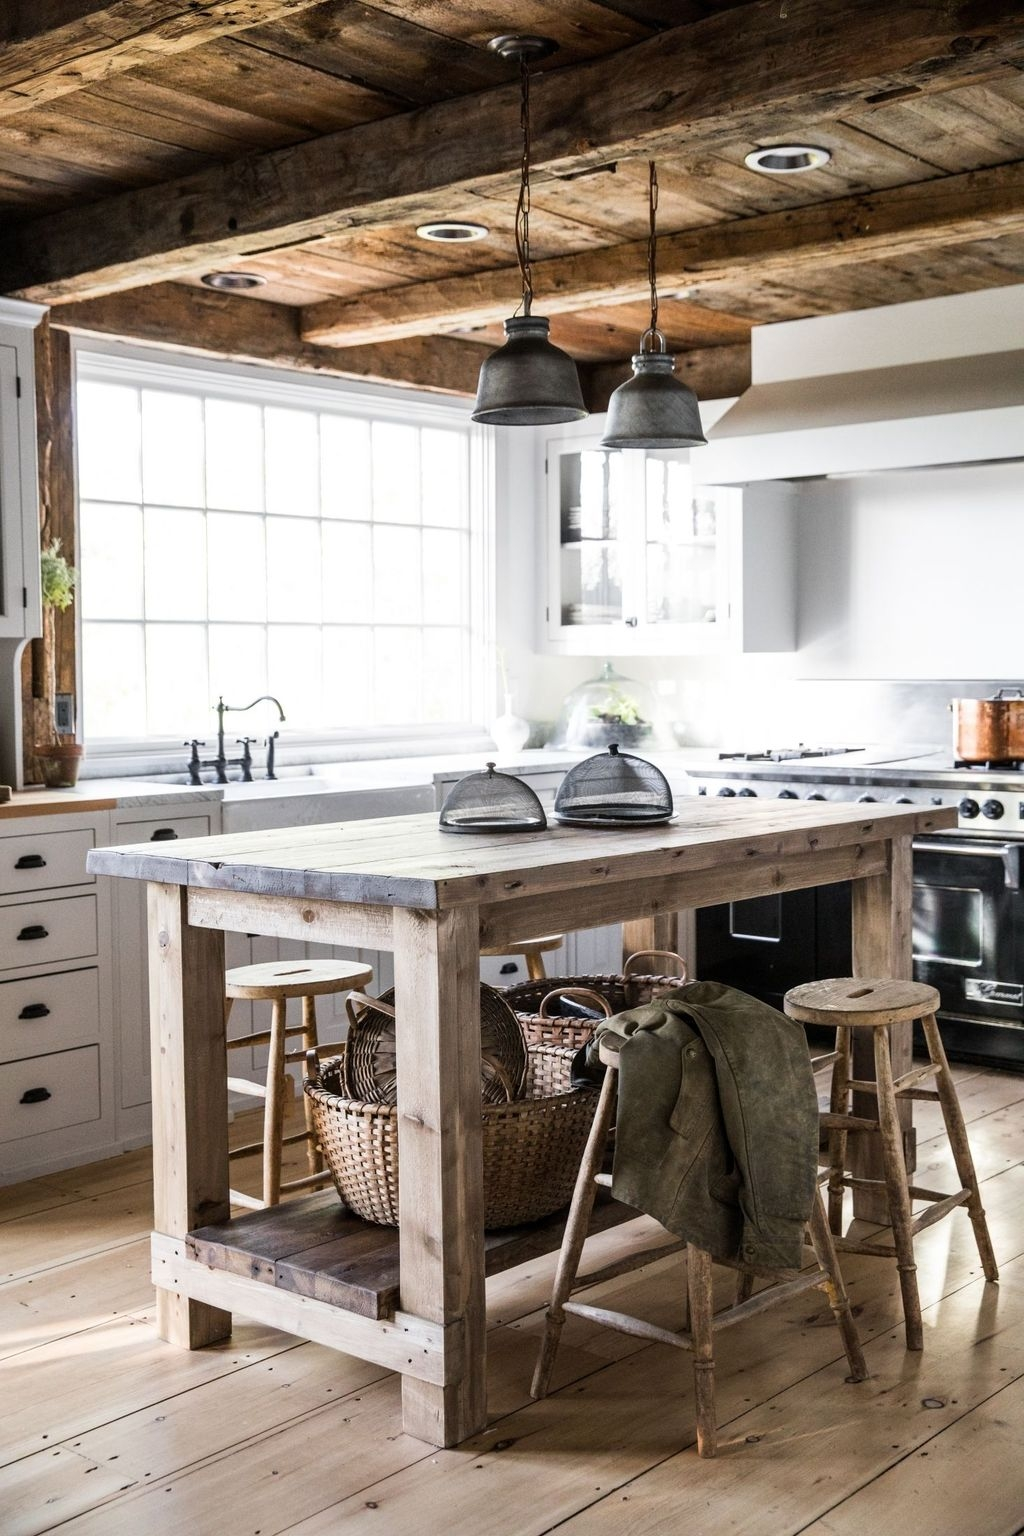 Awesome Rustic Kitchen Island Design Ideas 39